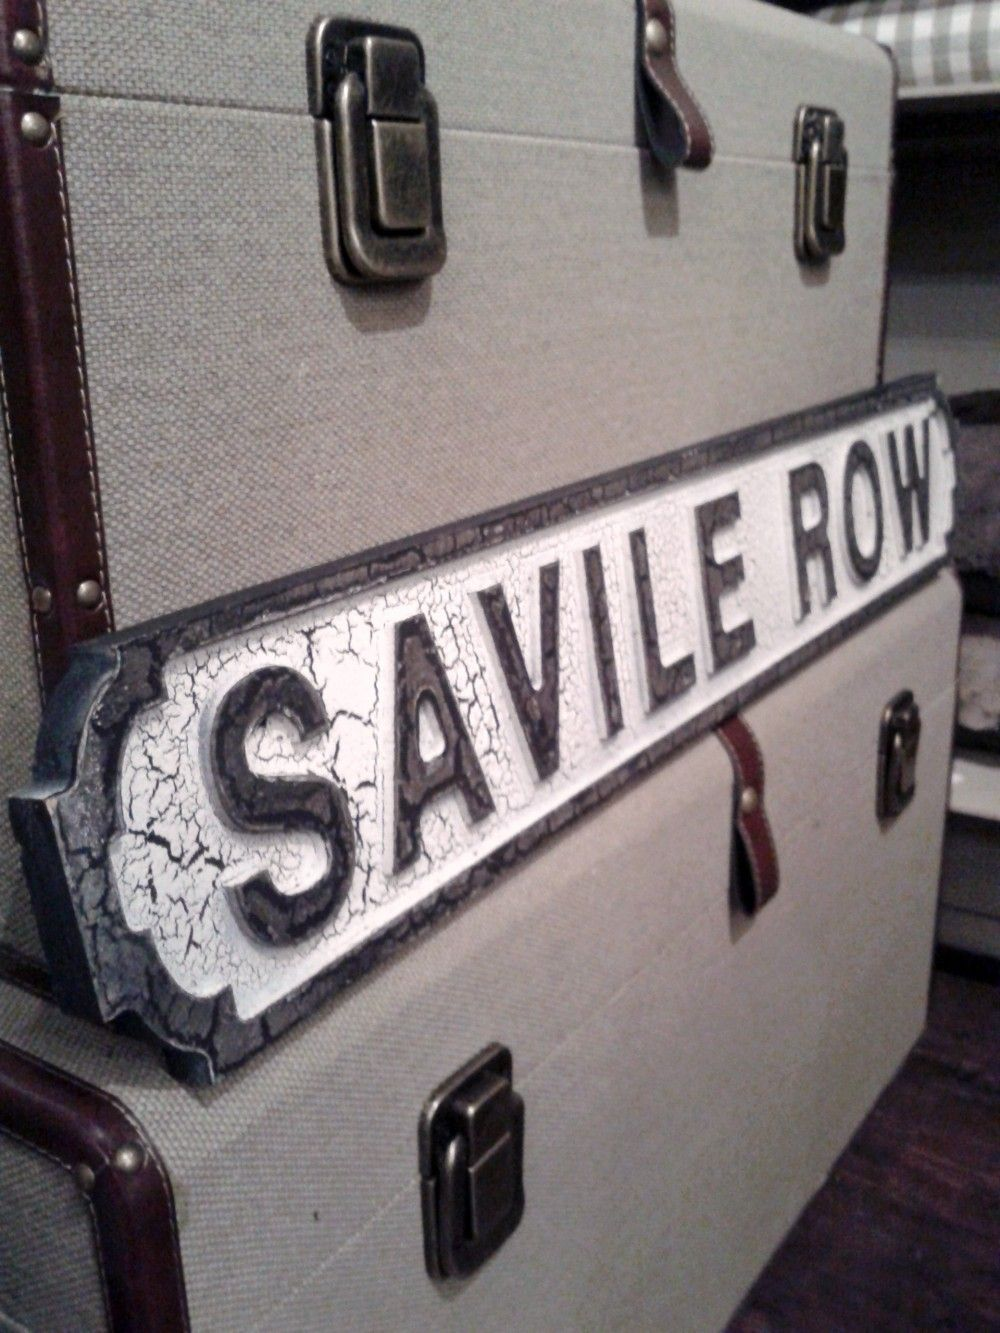 London vintage road signs - several places/ street names available   Pomponette   leicester #roadsign #vintageroadsign #savilerow